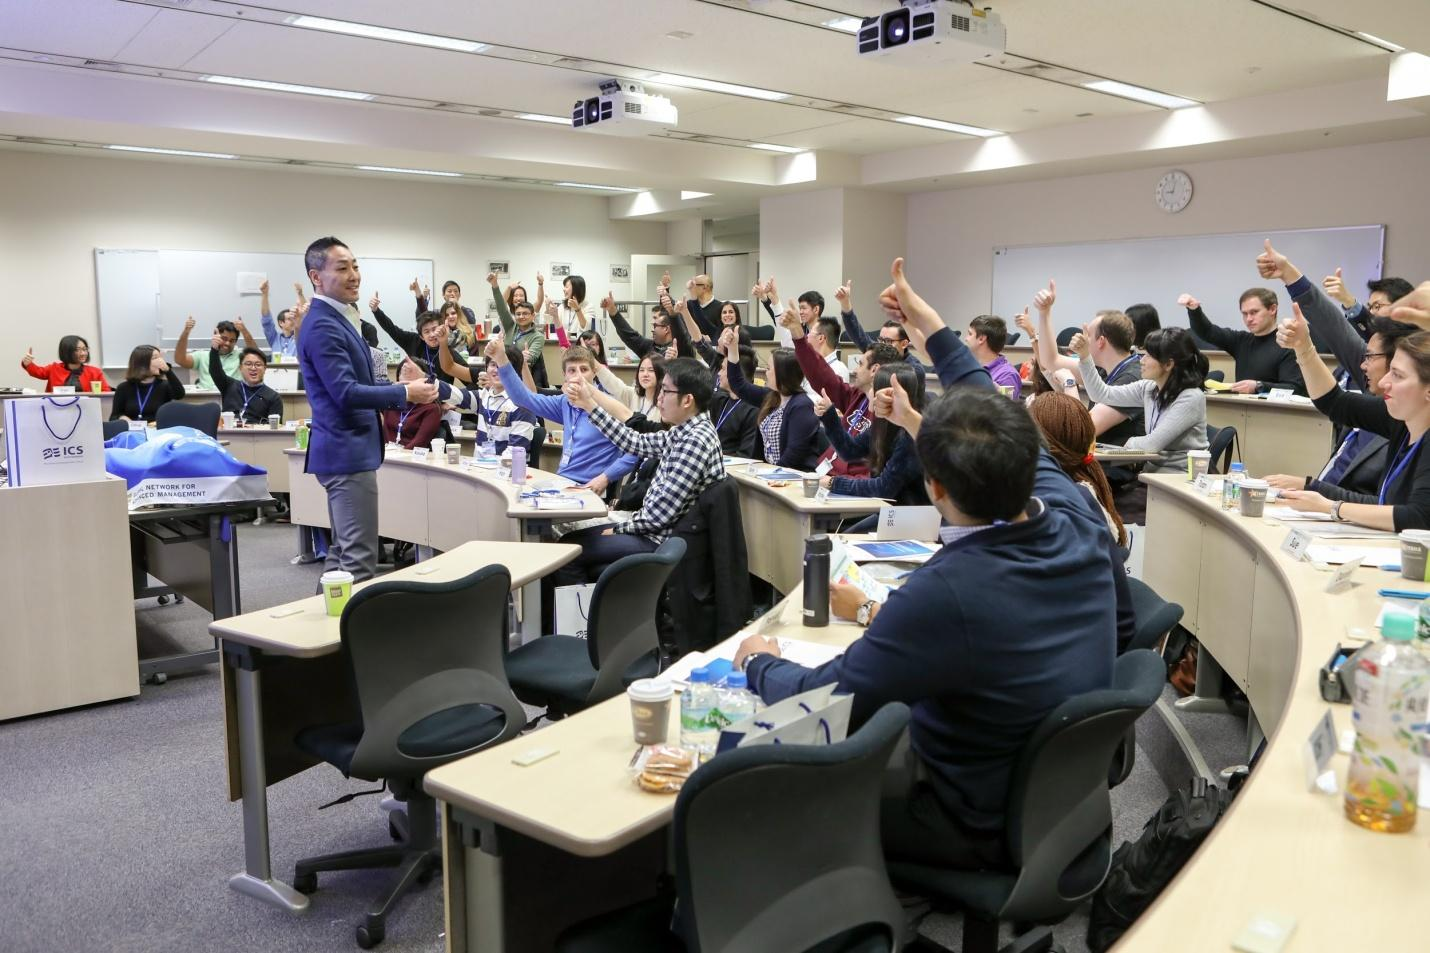 MBA students raising hands to answer